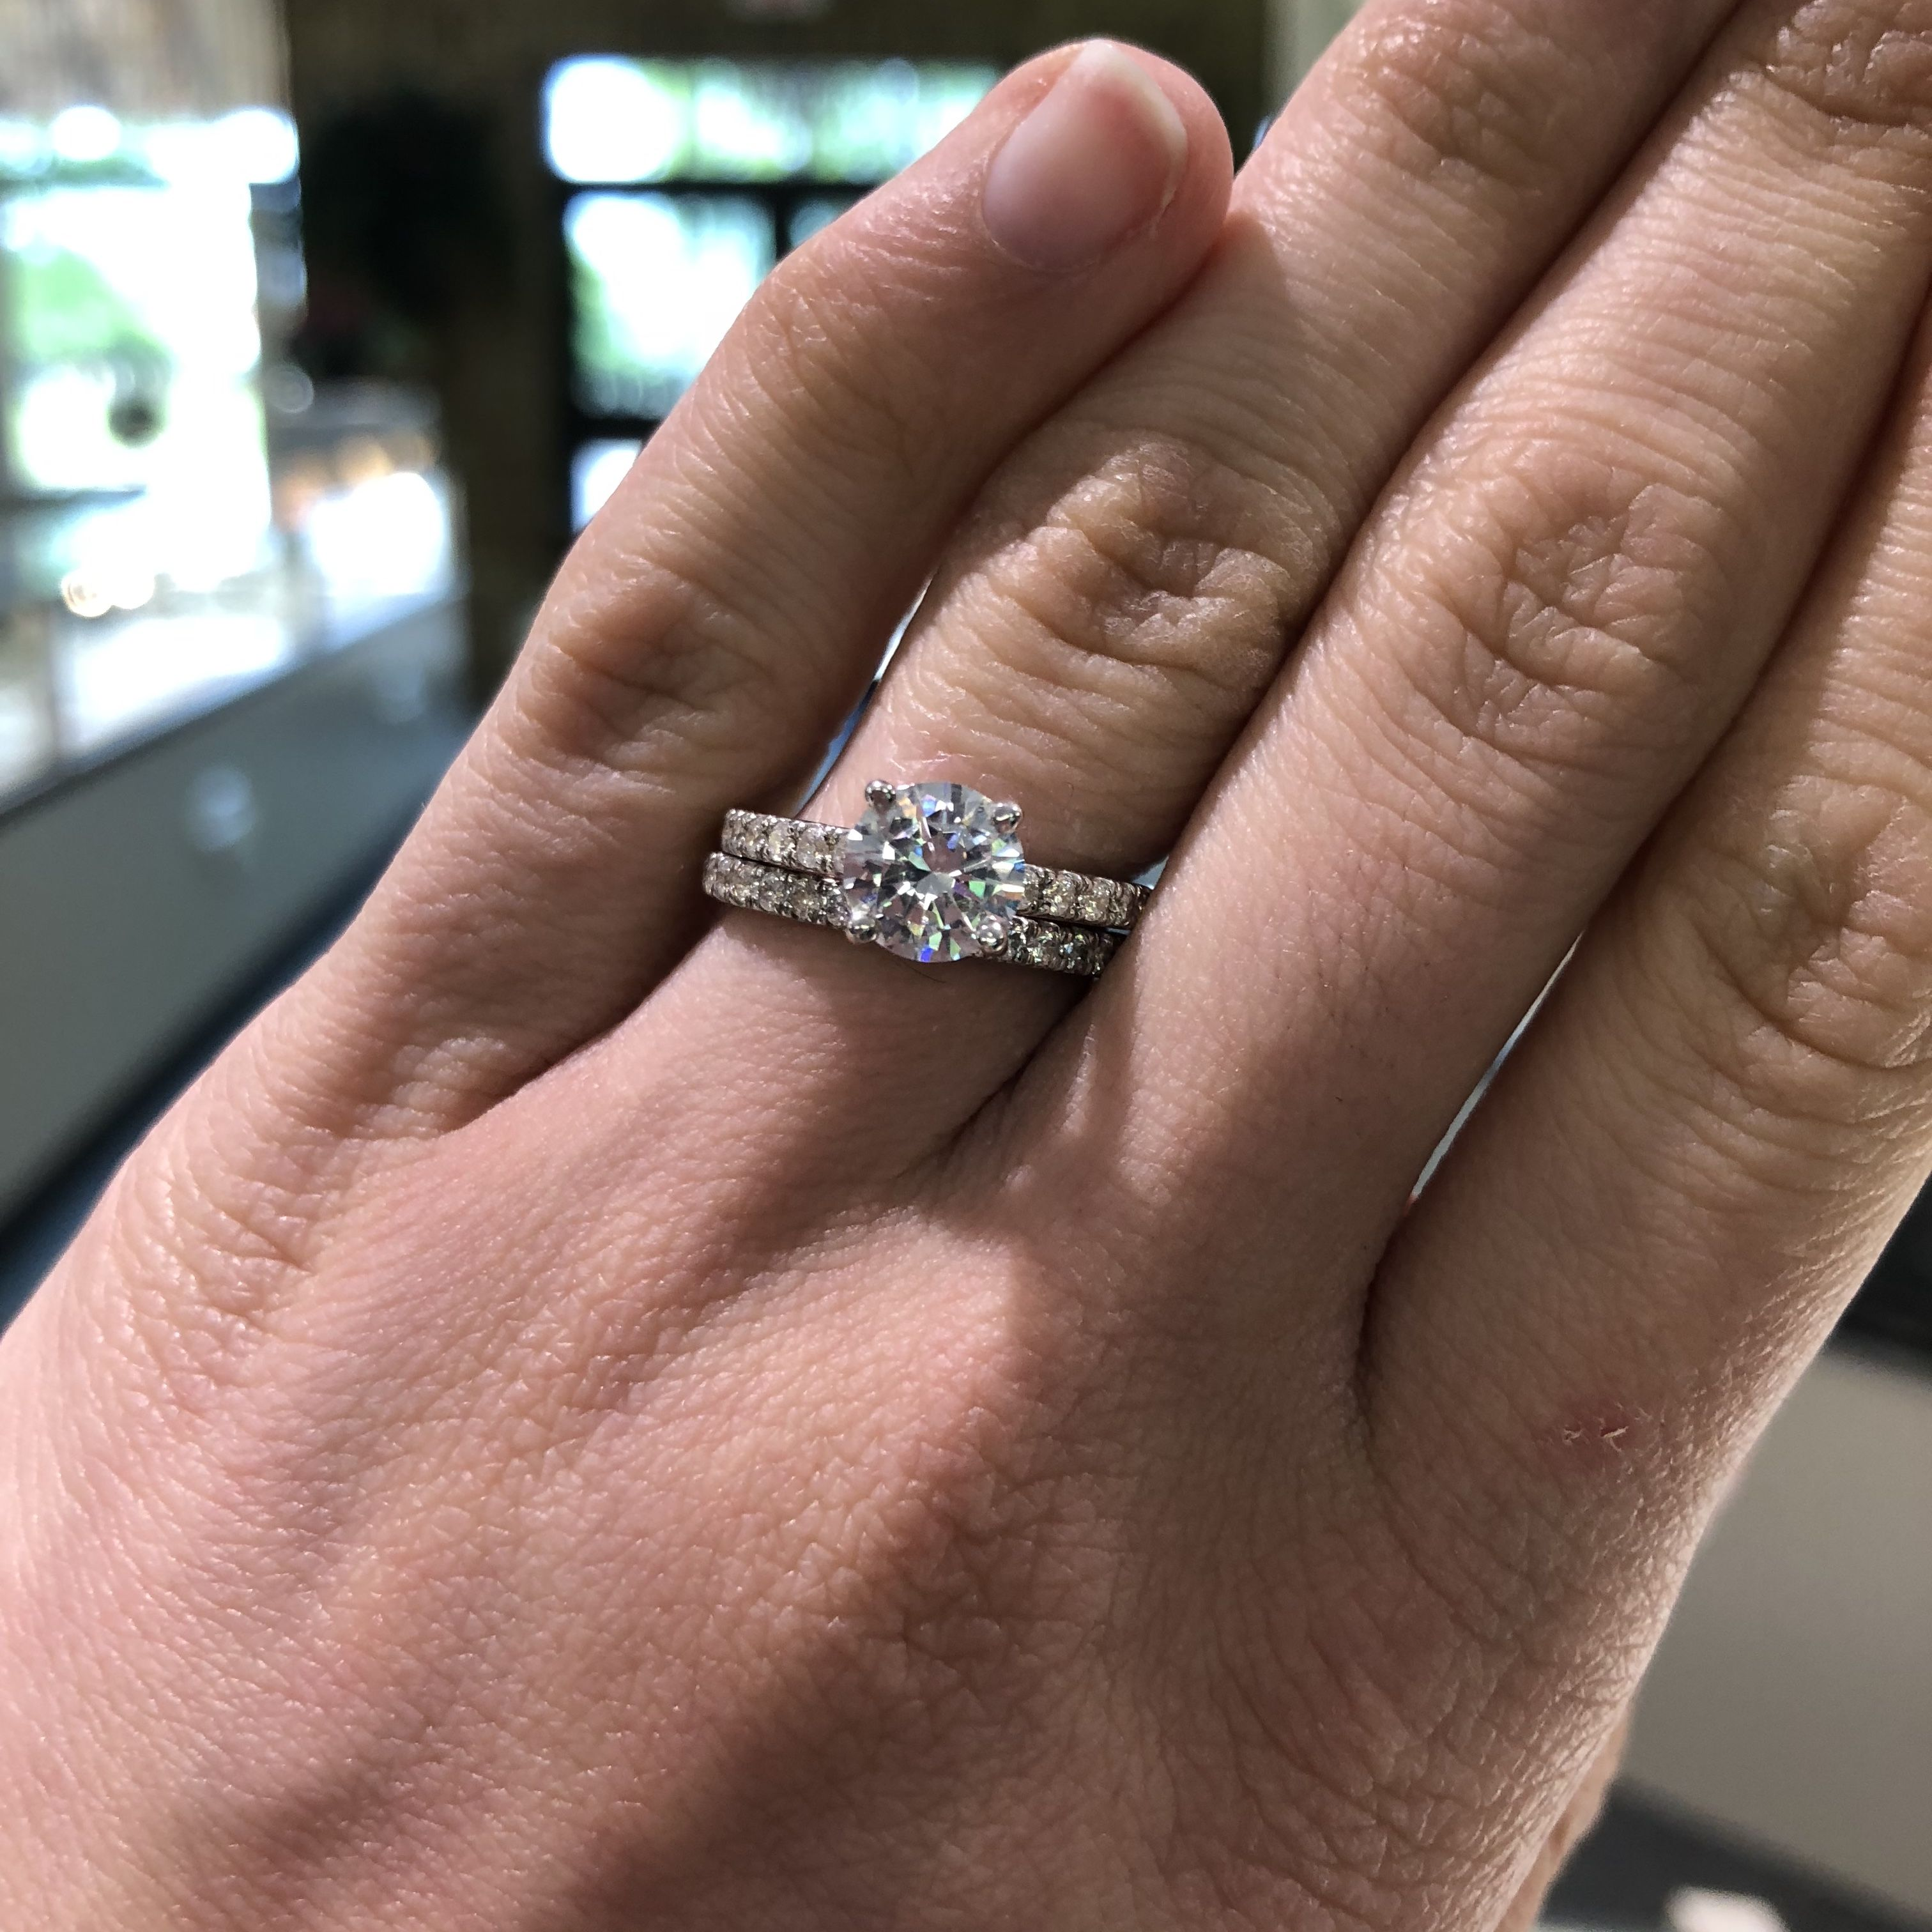 14k White Gold Classic Diamond Accent Wedding Set The Engagement Ring Holds A 1ct Round Diamond Accent Engagement Rings Diamond Wedding Sets Engagement Rings